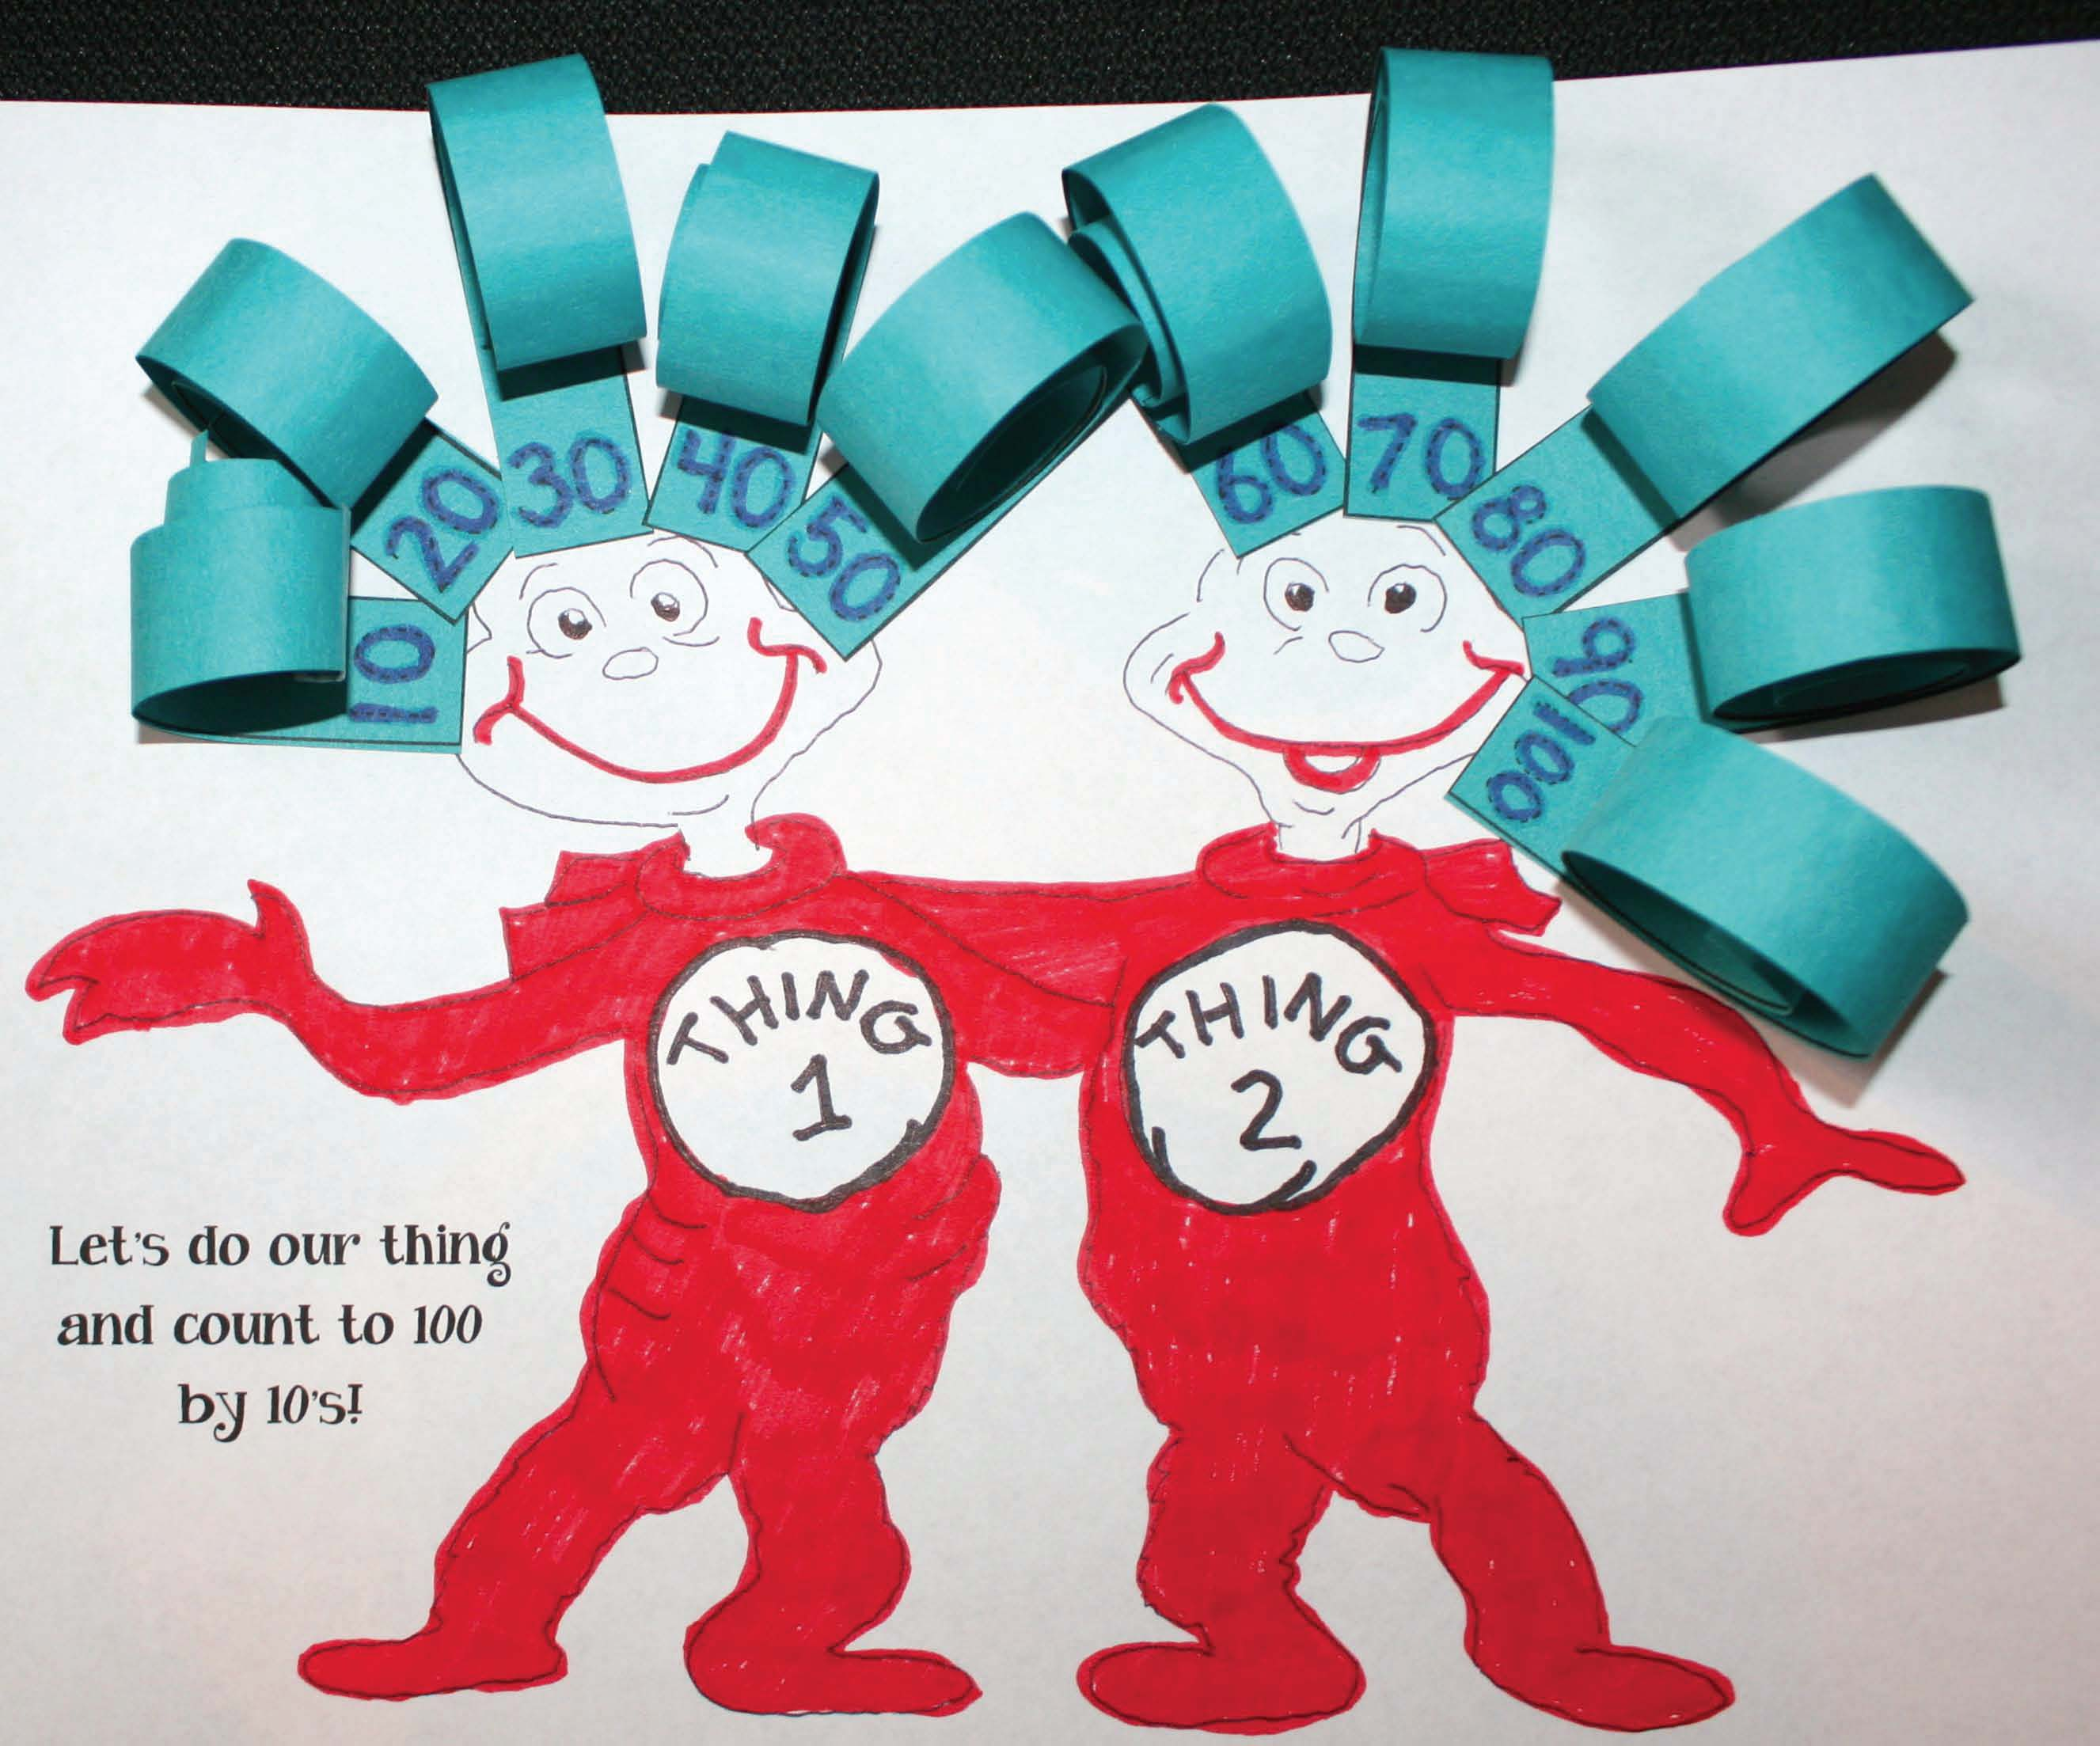 dr seuss activities, dr seuss lessons, dr seuss crafts, dr seuss bulletin boards, seuss puzzles, suess centers, suess games, alphabet activities, alphabet cards, suess number cards, suess alphabet cards, skip counting activities, counting backwards activities, suess puzzles,